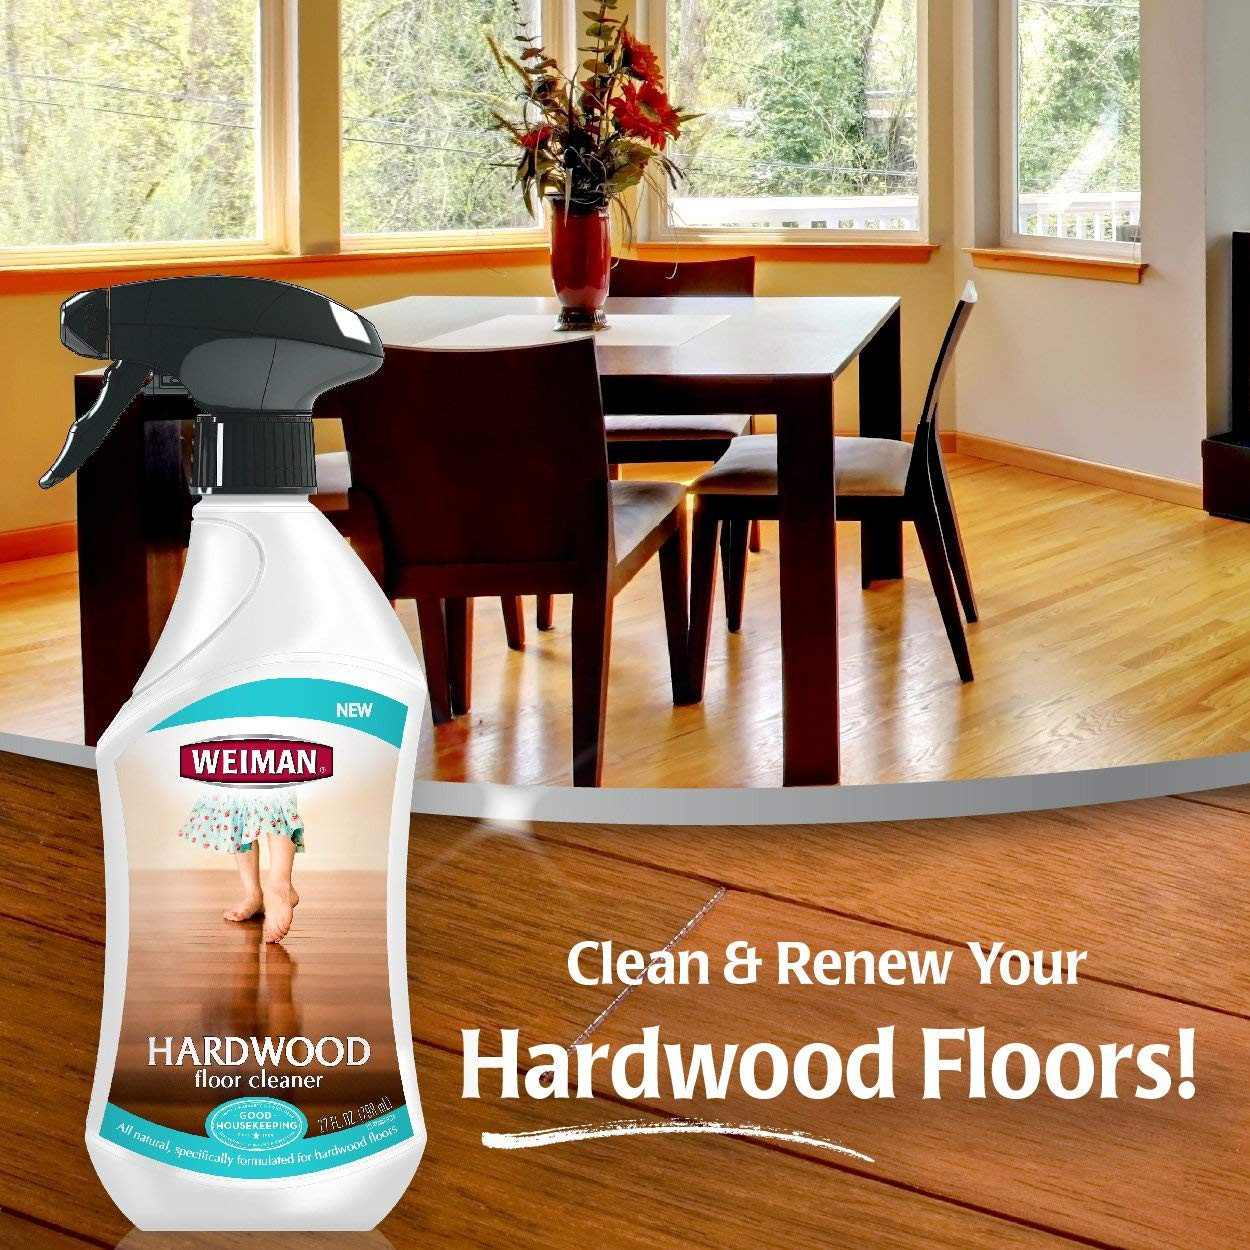 manufactured hardwood floor cleaner of amazon com weiman hardwood floor cleaner surface safe no harsh pertaining to amazon com weiman hardwood floor cleaner surface safe no harsh scent safe for use around kids and pets residue free 27 oz trigger home kitchen